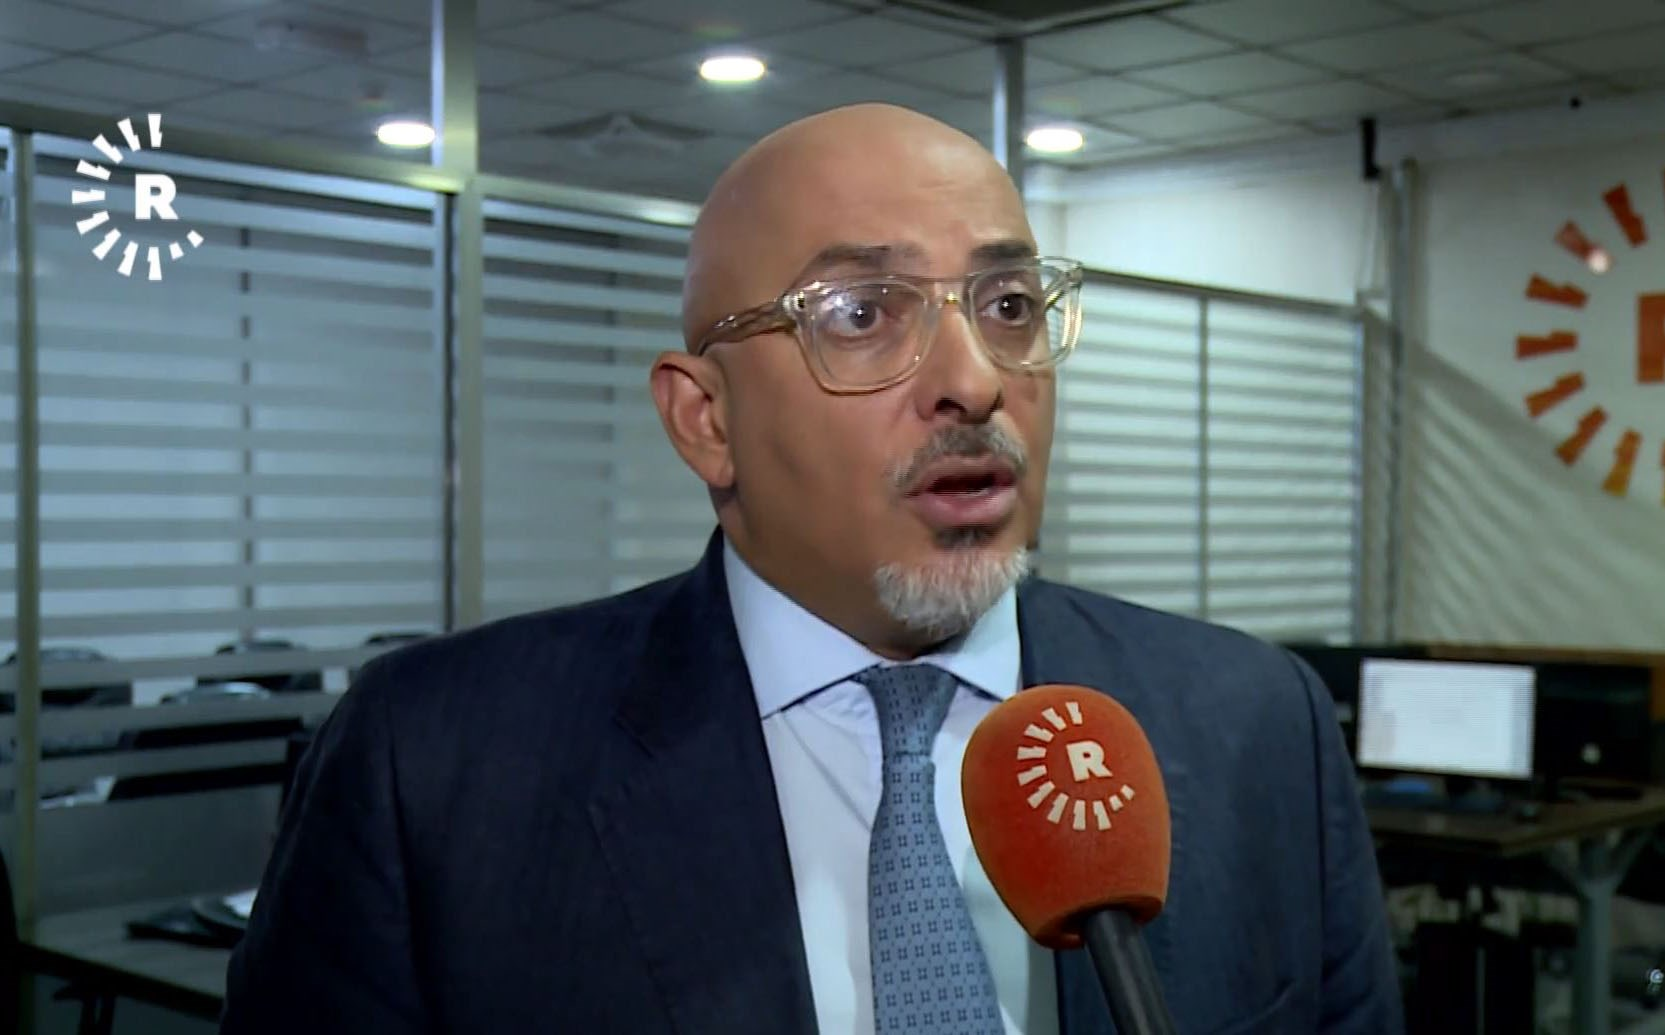 Nadhim Zahawi, member of the UK parliament. File photo: Rudaw